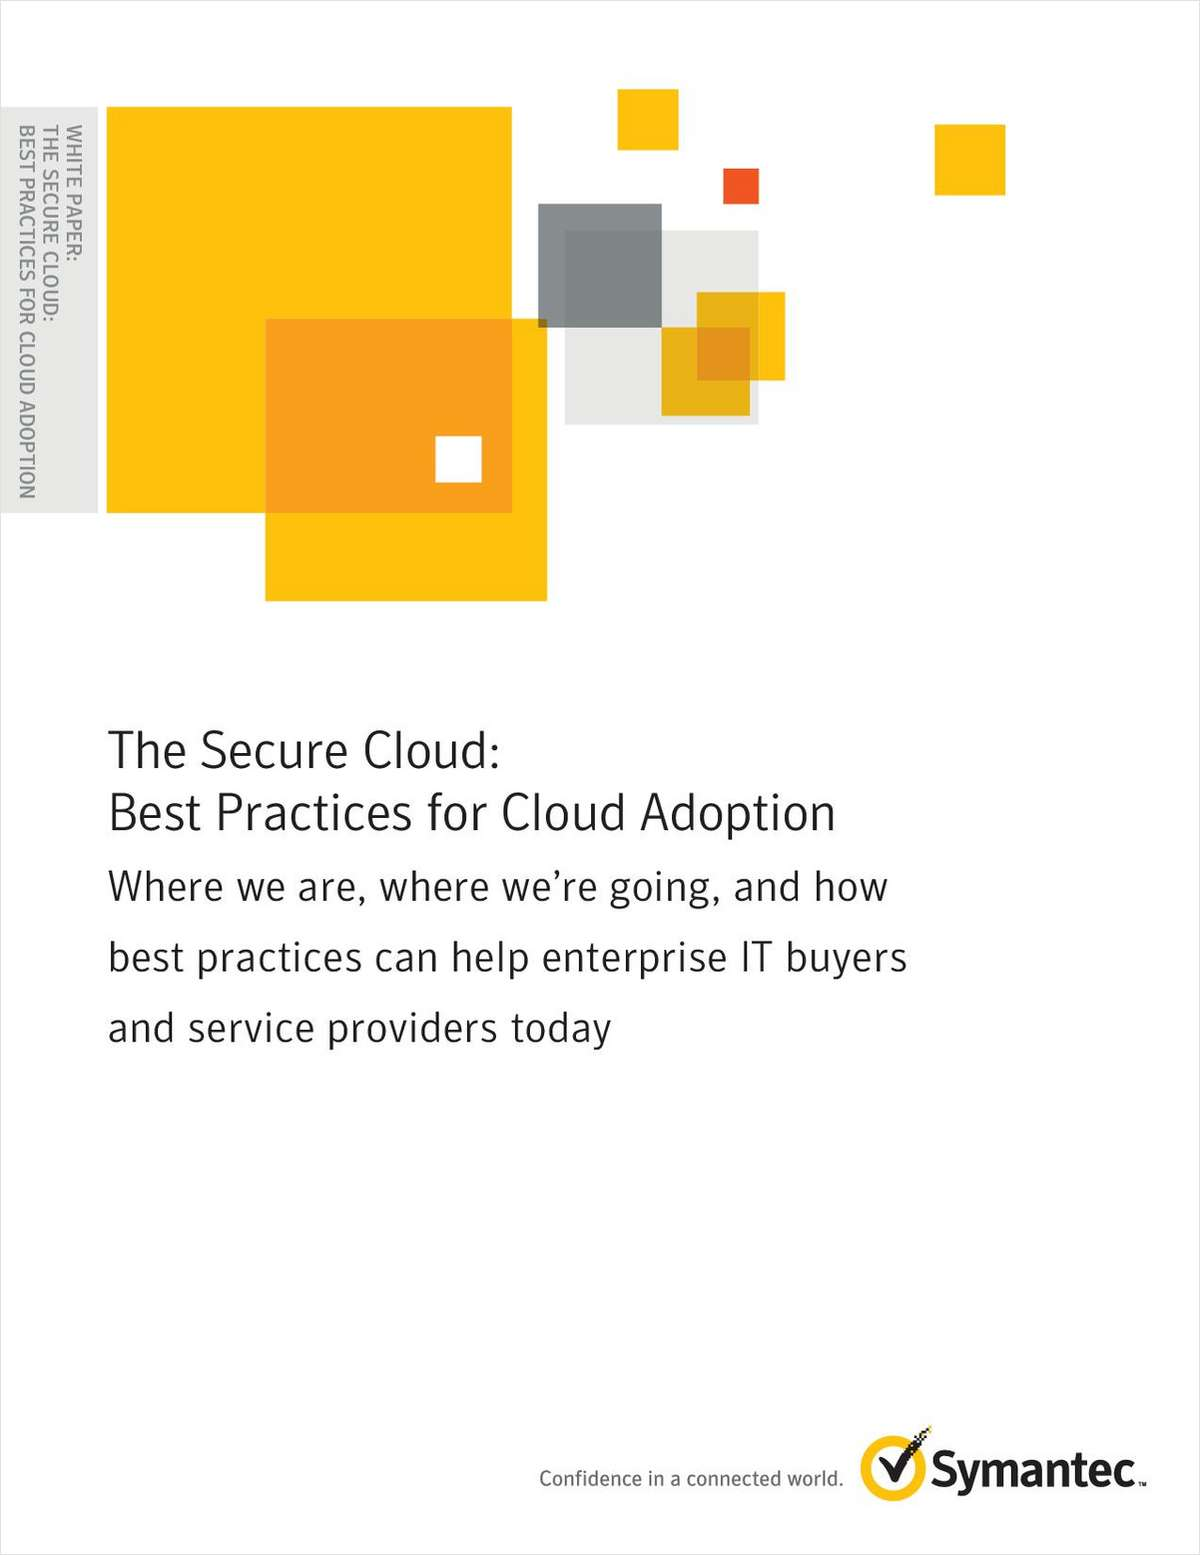 The Secure Cloud: Best Practices for Cloud Adoption